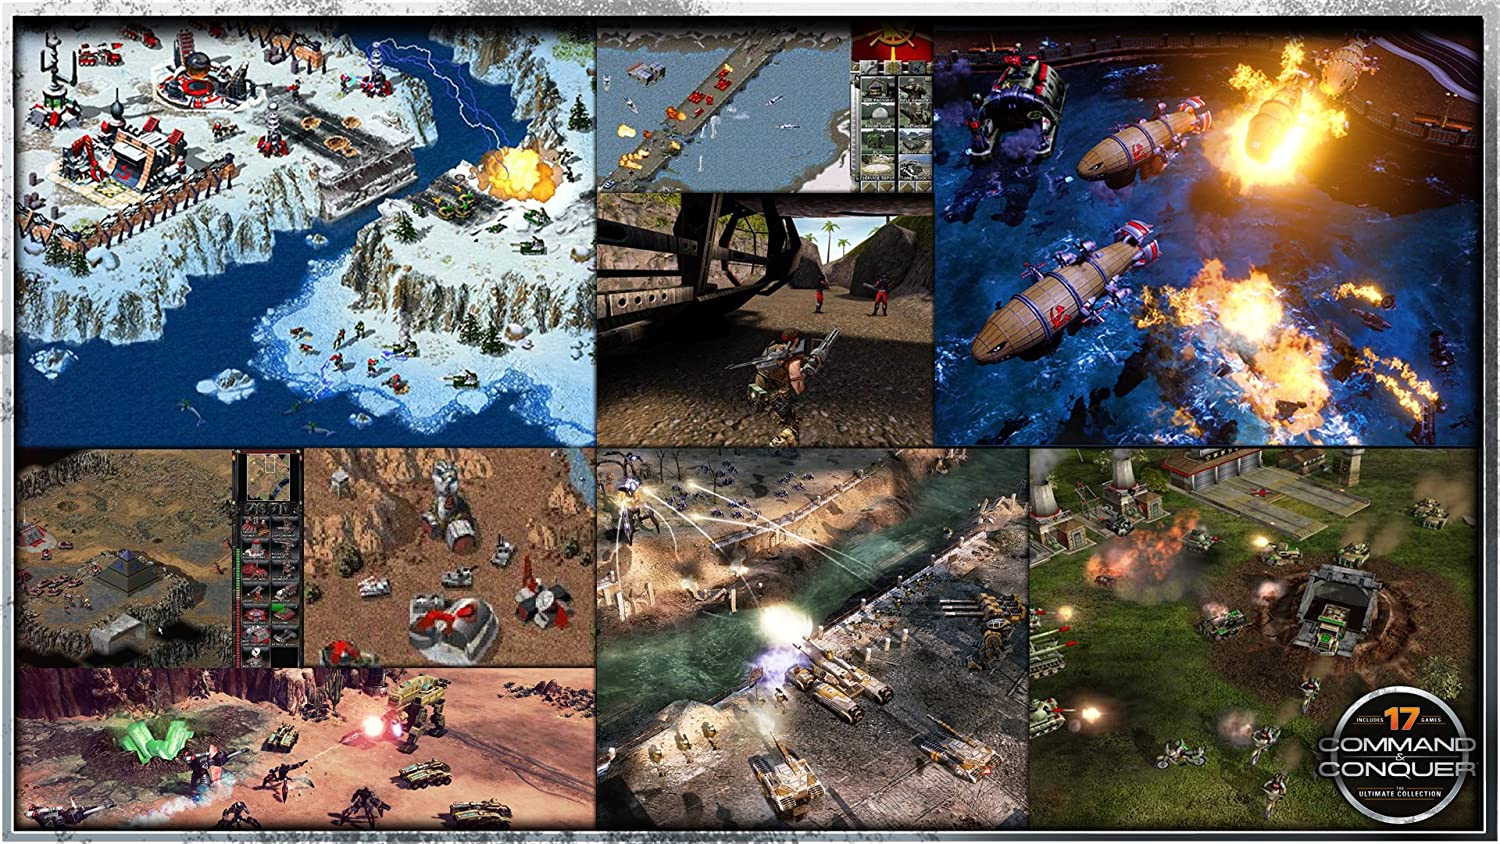 amazon com command and conquer the ultimate collection online amazon com command and conquer the ultimate collection online game code video games